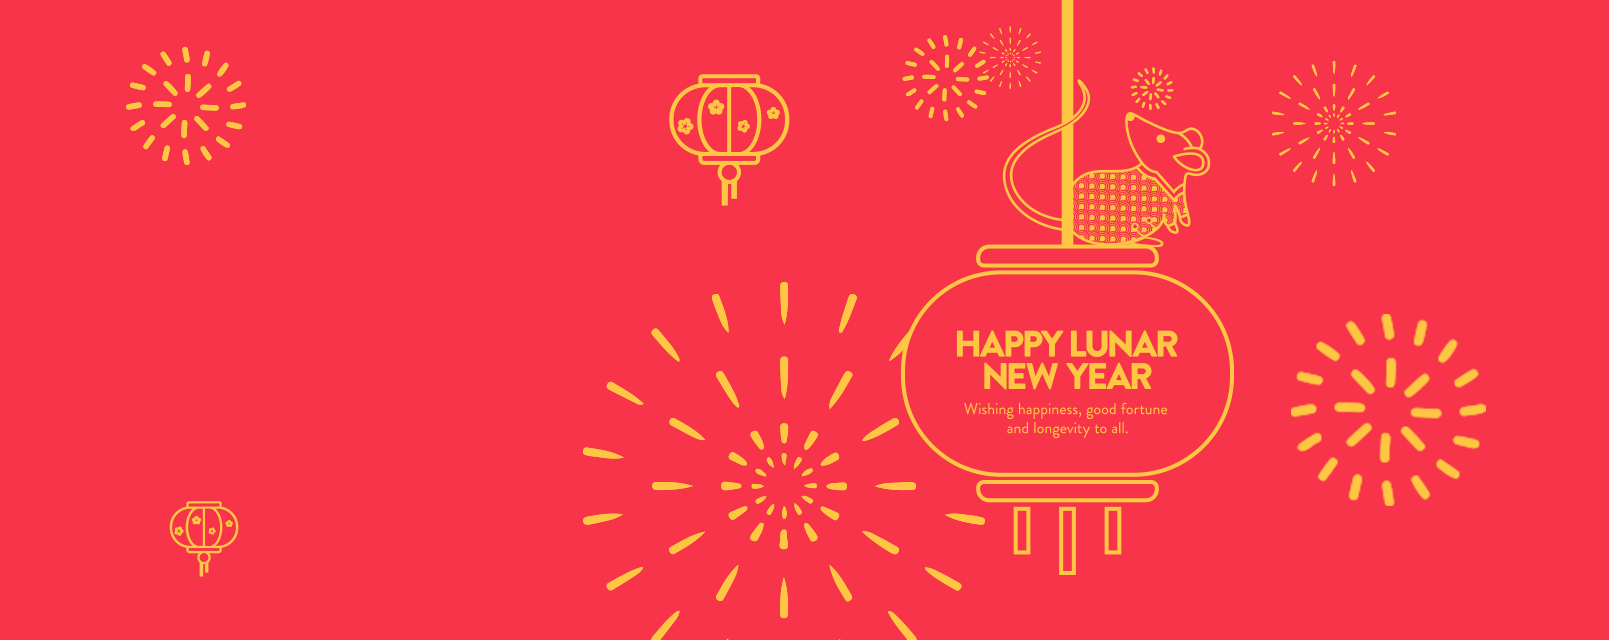 Happy Lunar New Year: wishing happiness, good fortune and longevity to all.